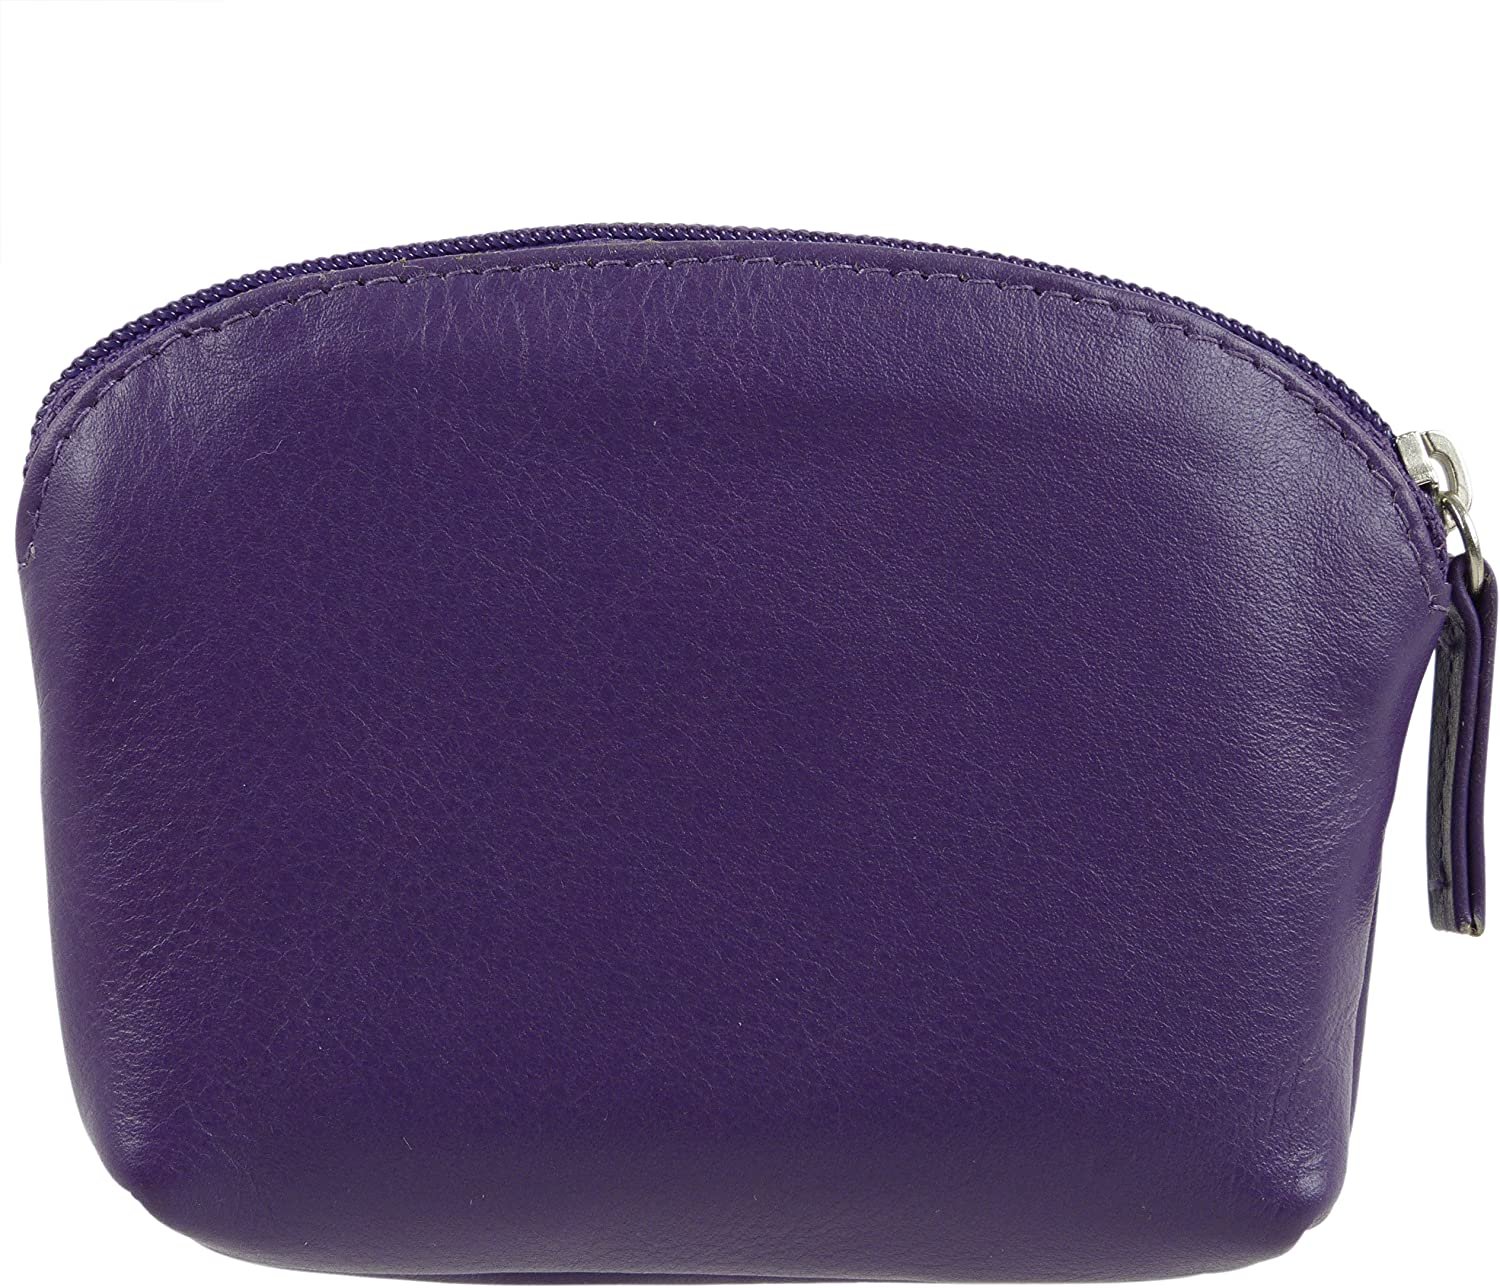 Ladies Leather Coin Purse with Integral Key Fob by Golunski Blue Or Purple Purple Multi